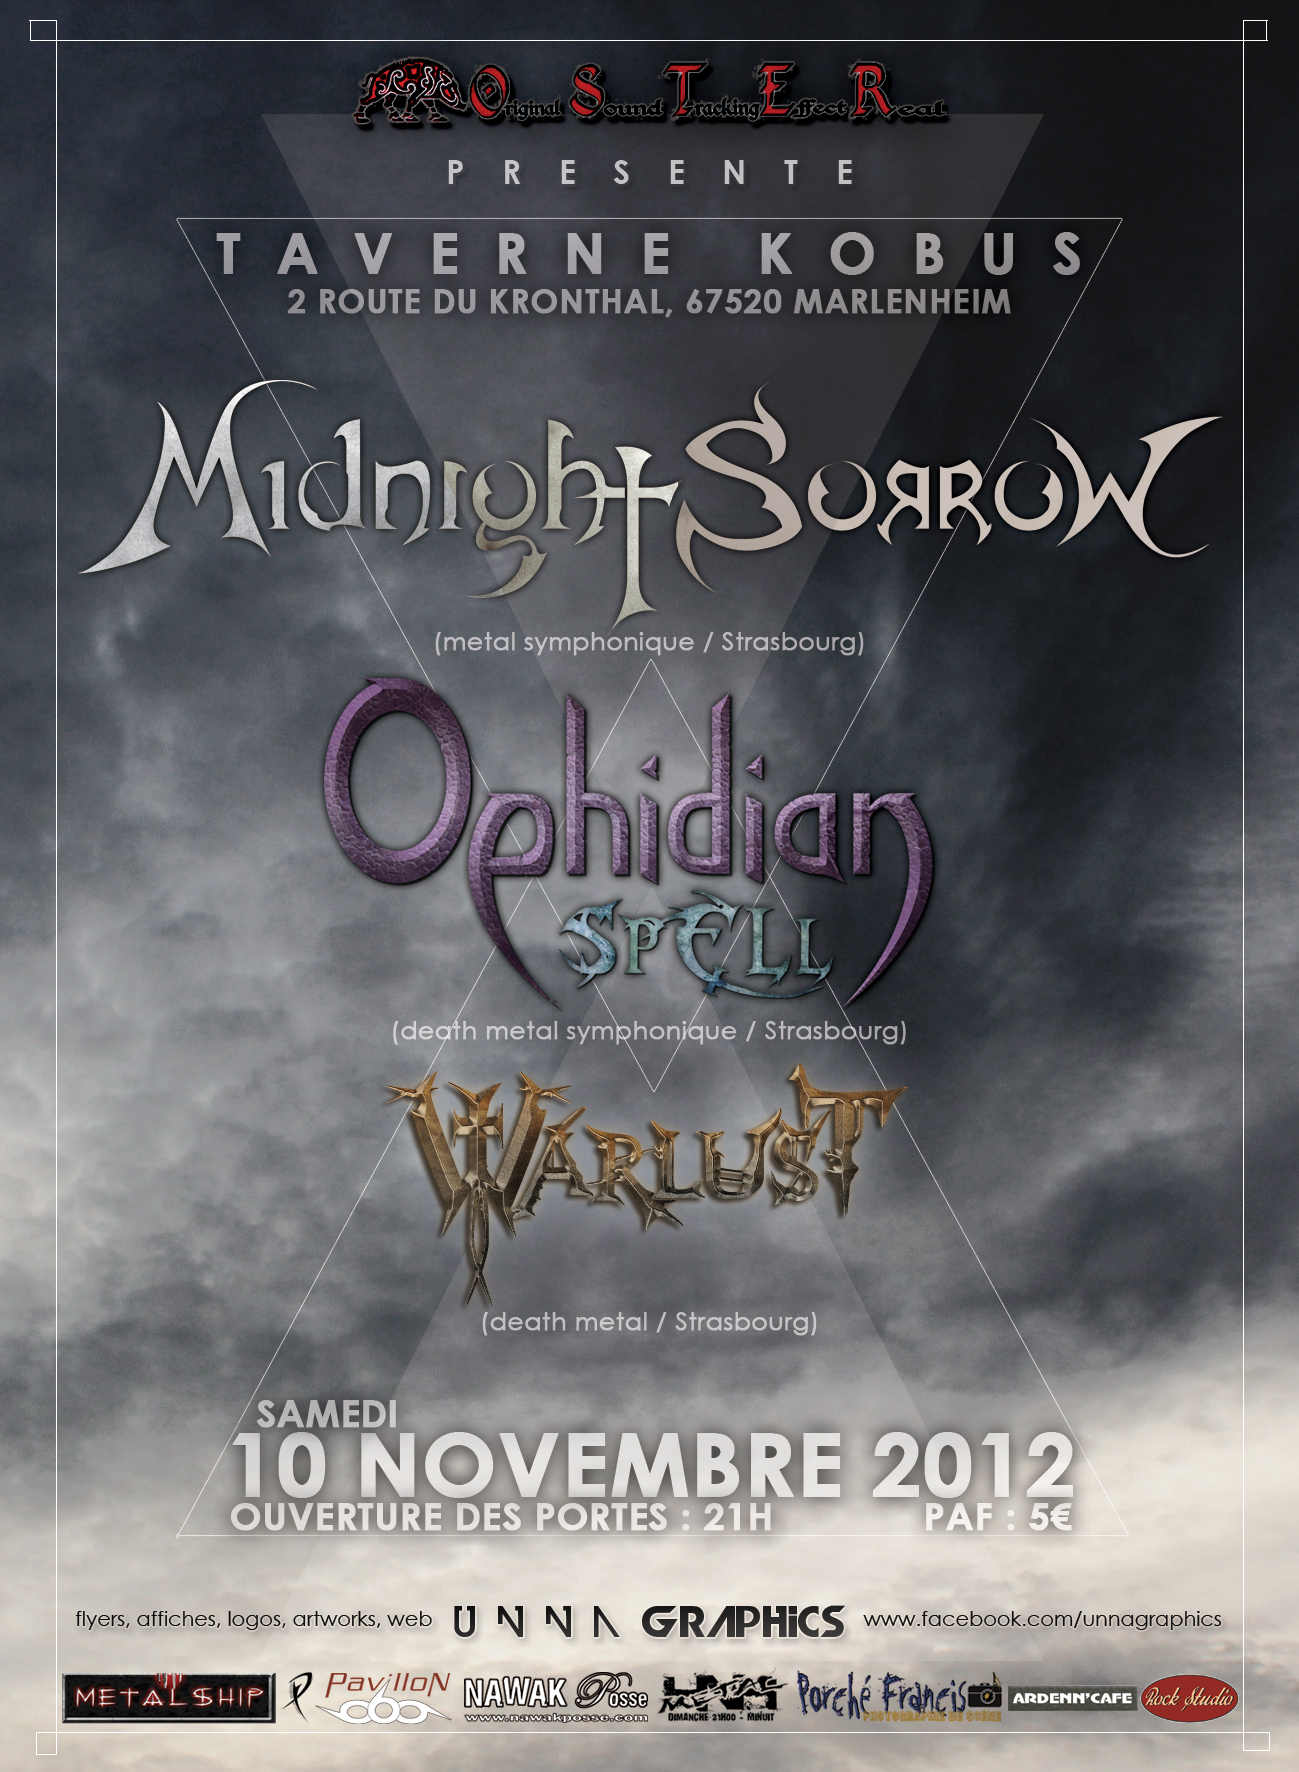 SOIREE METAL SYMPHONIQUE